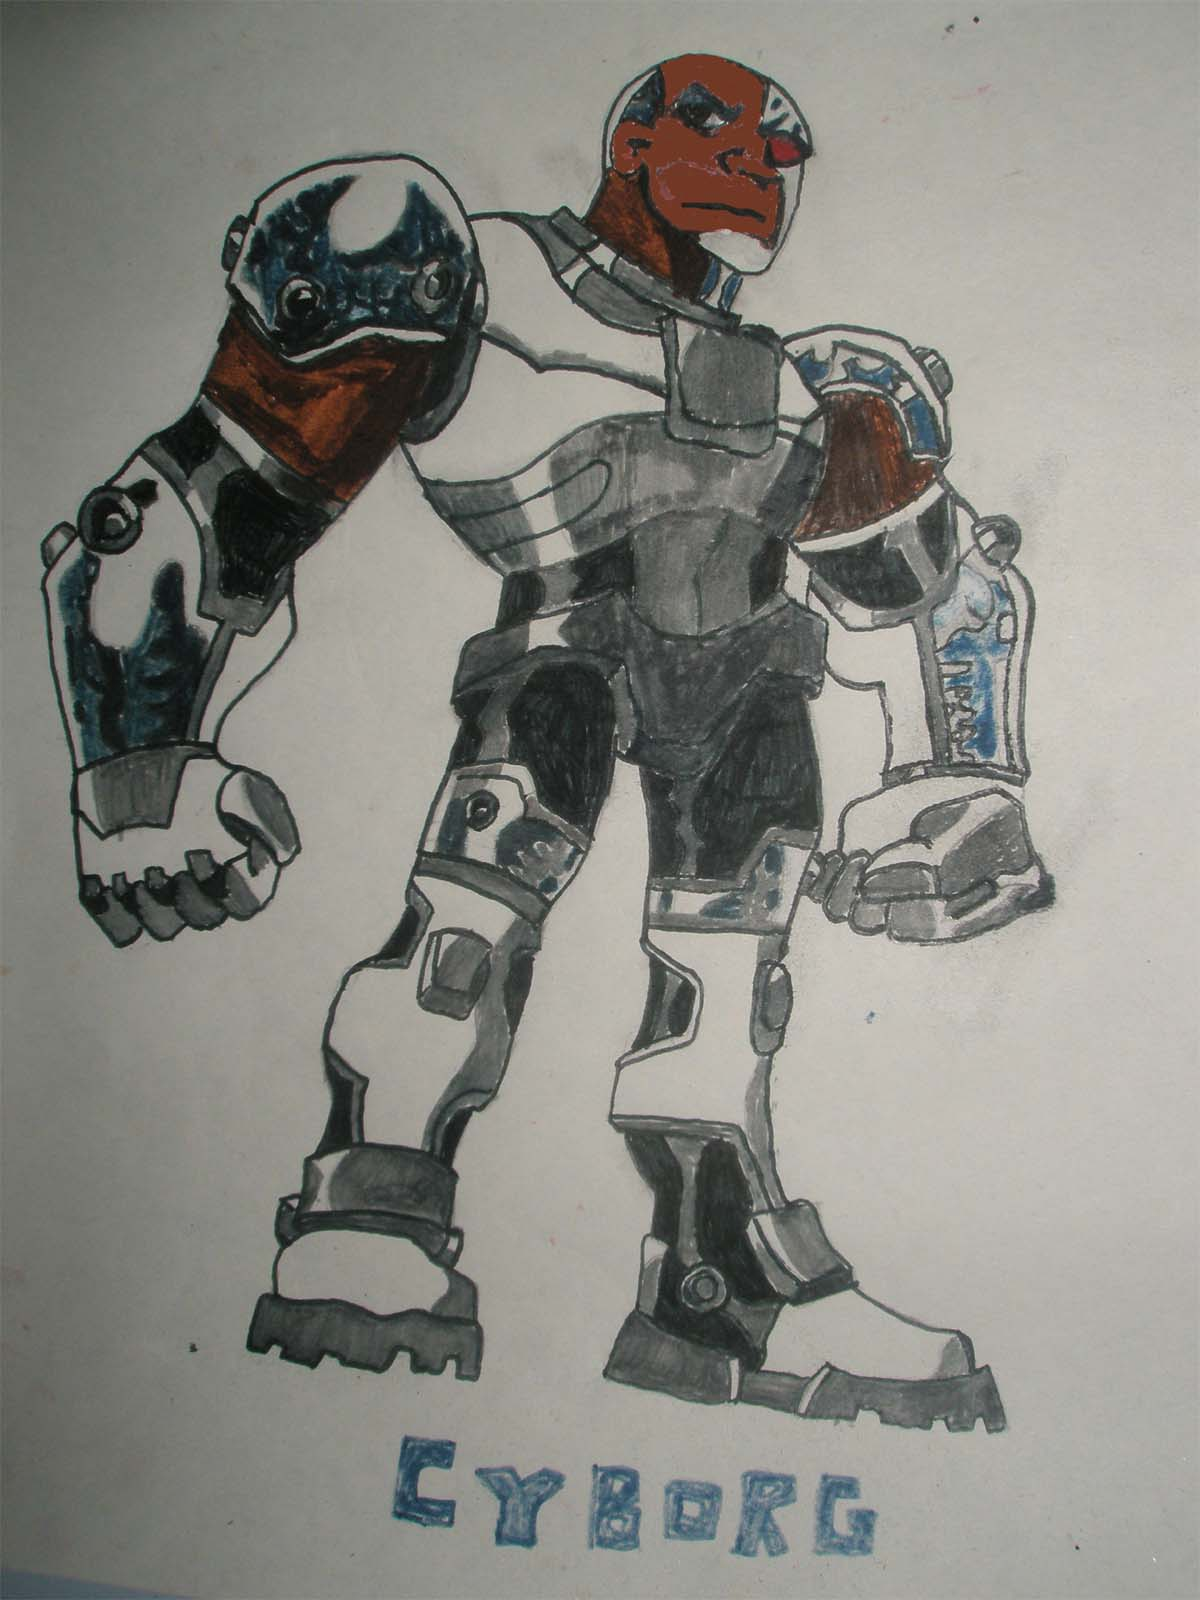 Cyborg - Picture By Toons27 - DrawingNow